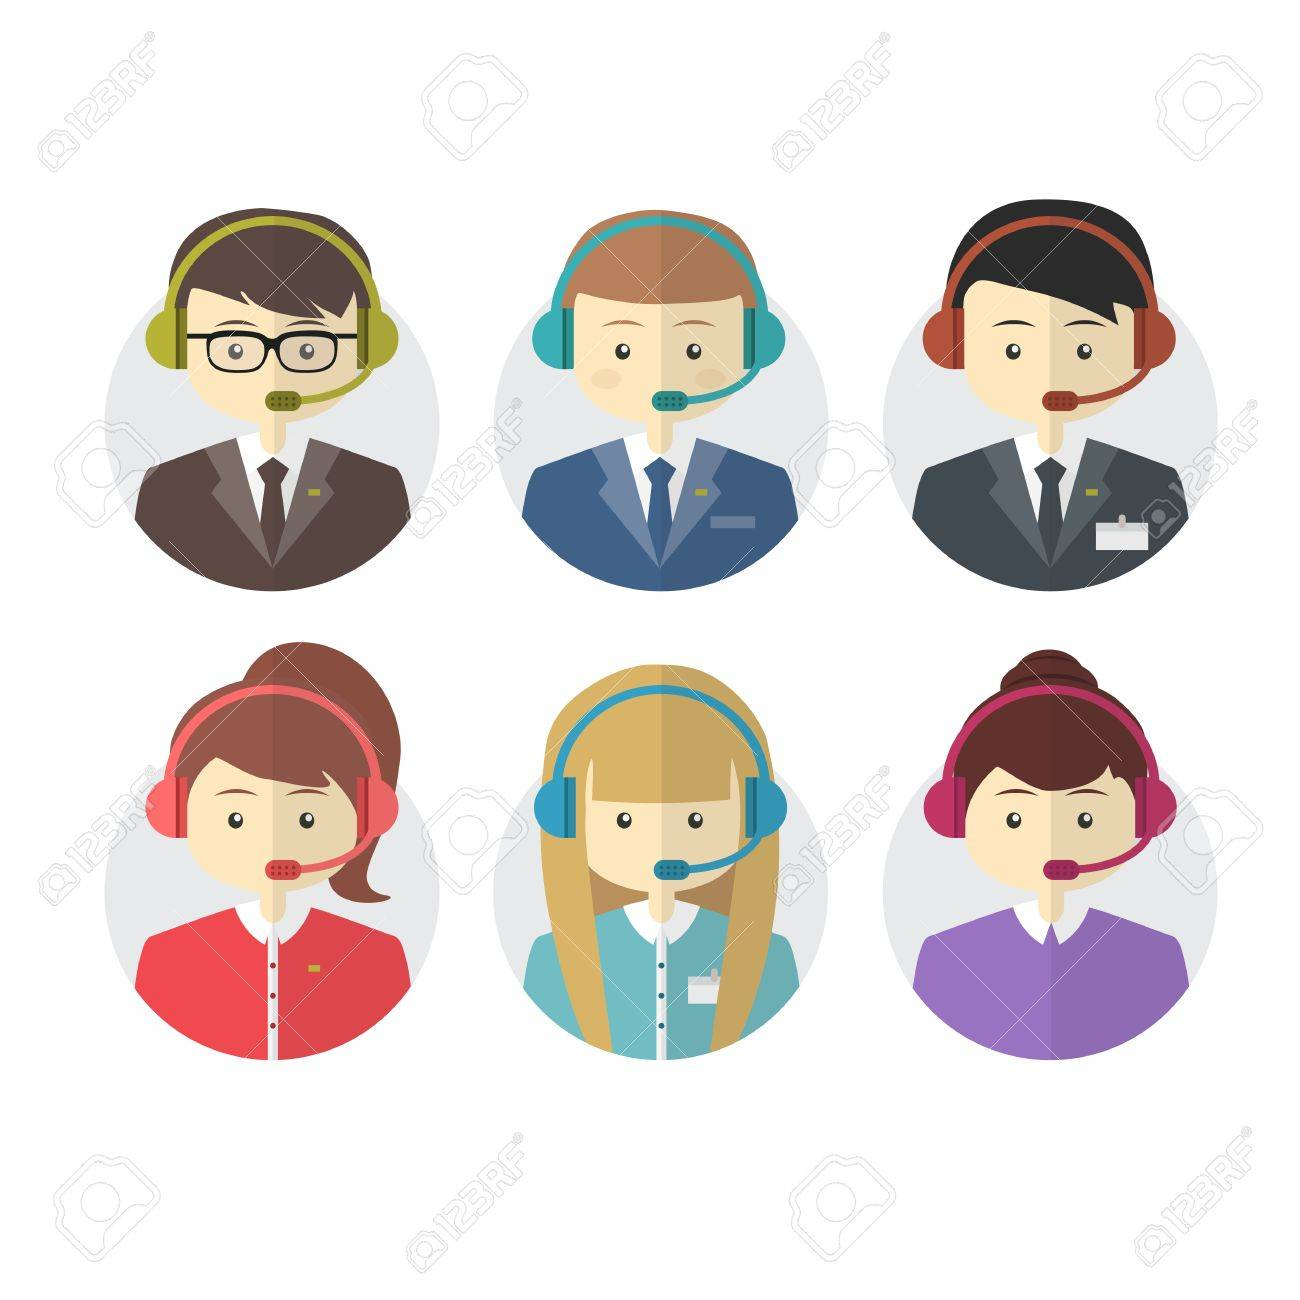 Call center operator icons with a smiling friendly man and woman wearing headsets on round web buttons vector illustration - 34885053